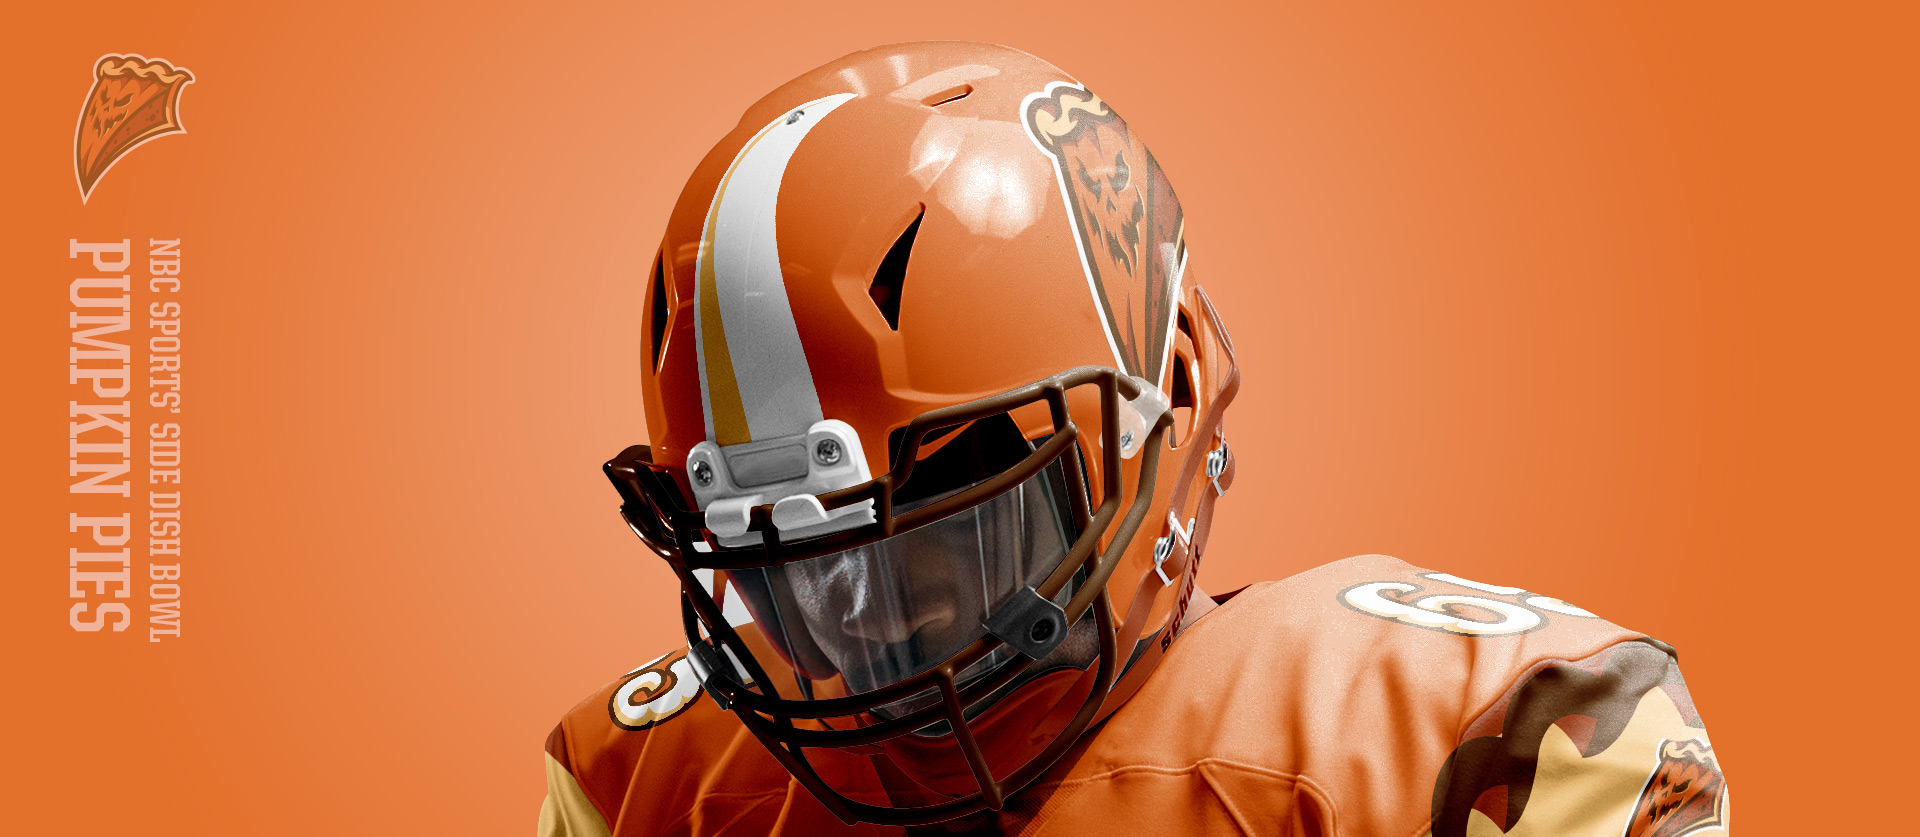 Pumpkin Pies Helmet Frontside - Football Uniform Design for NBC Sports Thanksgiving Side Dish Bowl